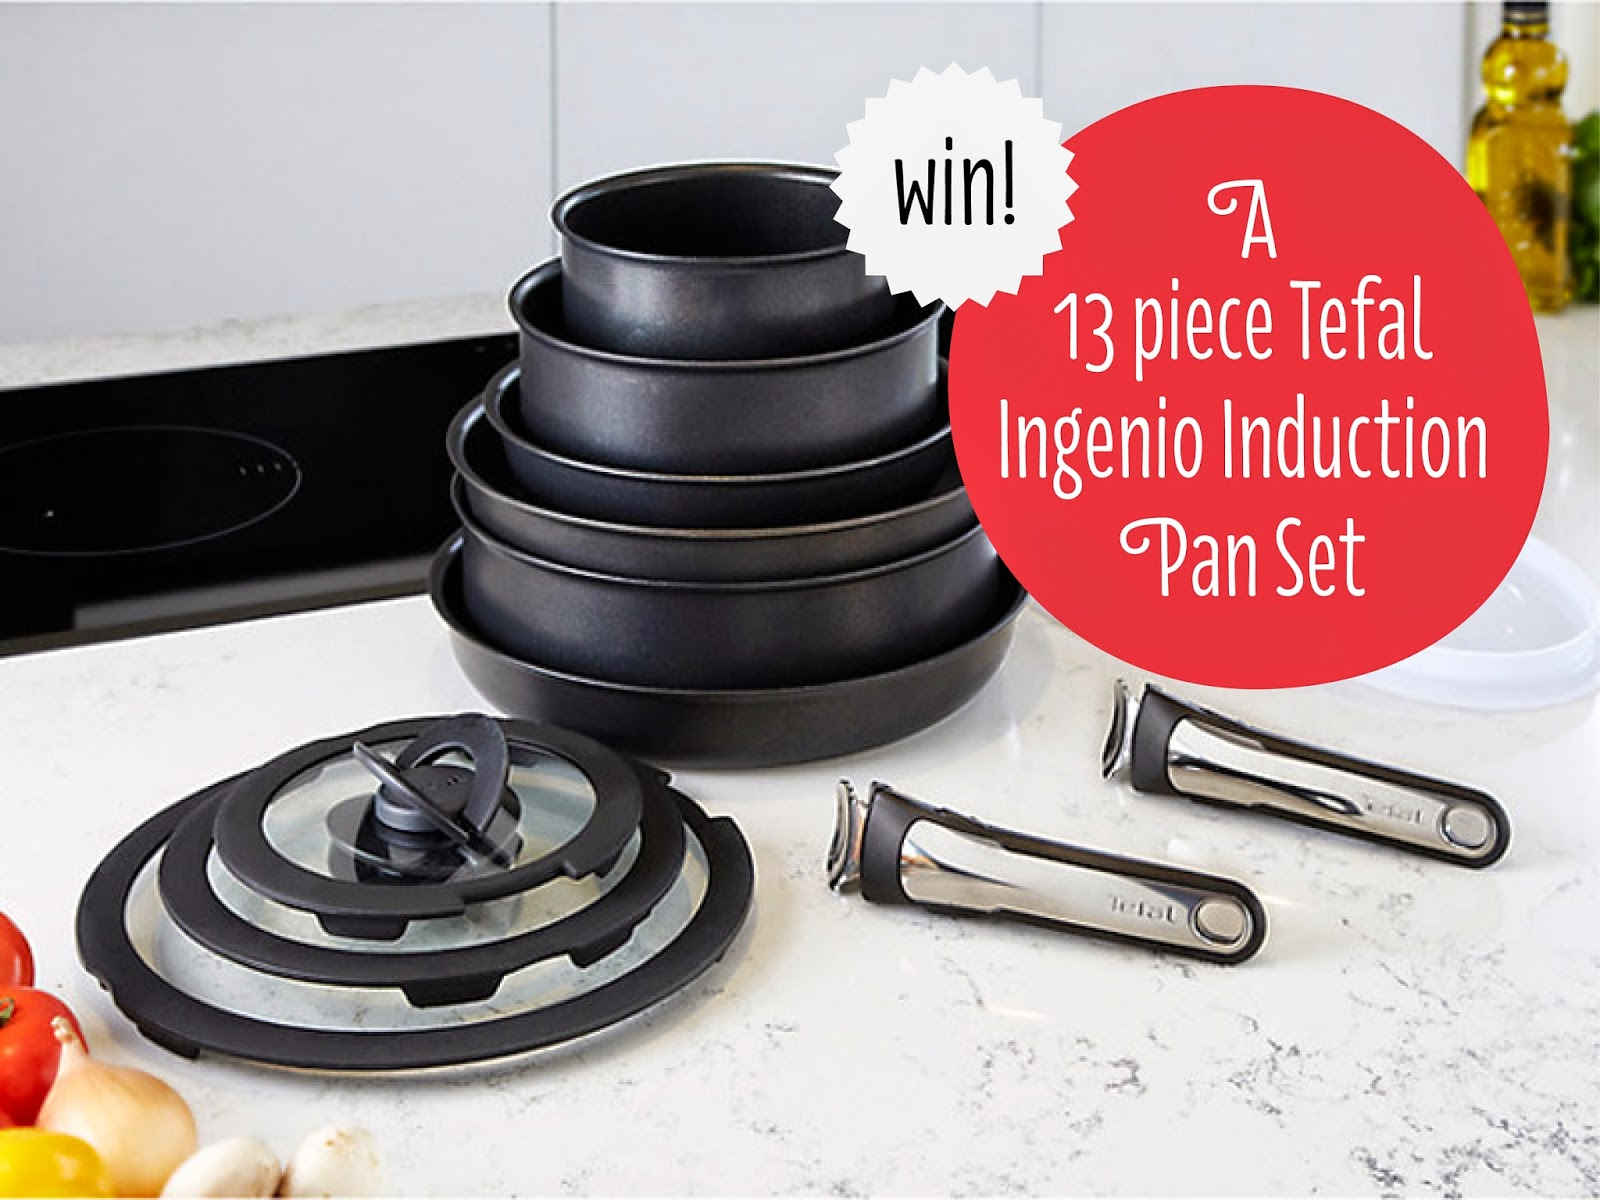 competition win a set of tefal ingenio induction pans. Black Bedroom Furniture Sets. Home Design Ideas